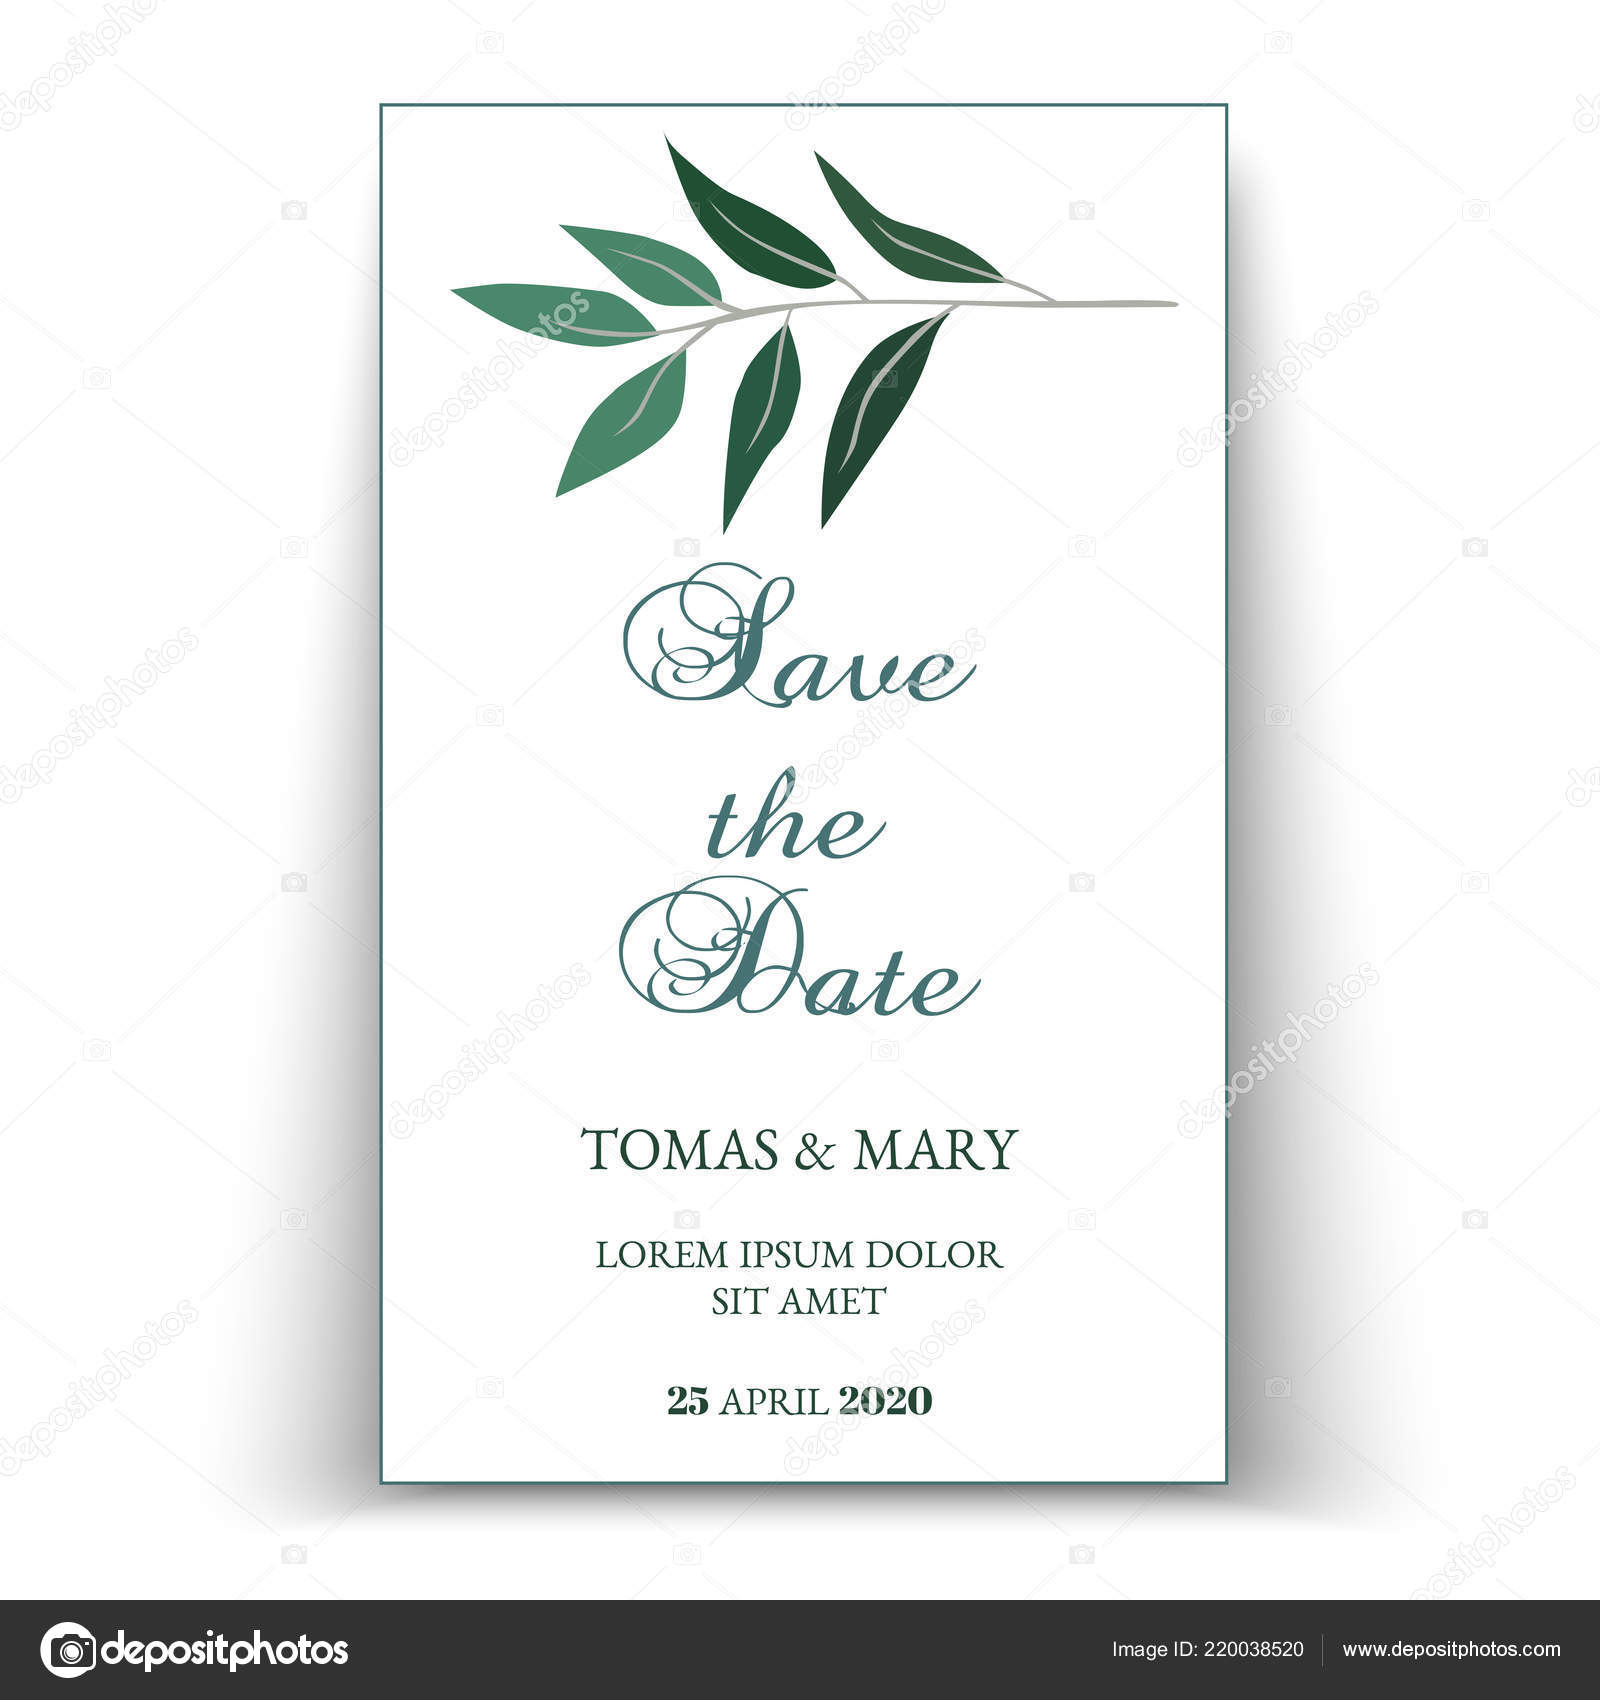 004 Outstanding Printable Wedding Invitation Template Concept  Free For Microsoft Word VintageFull